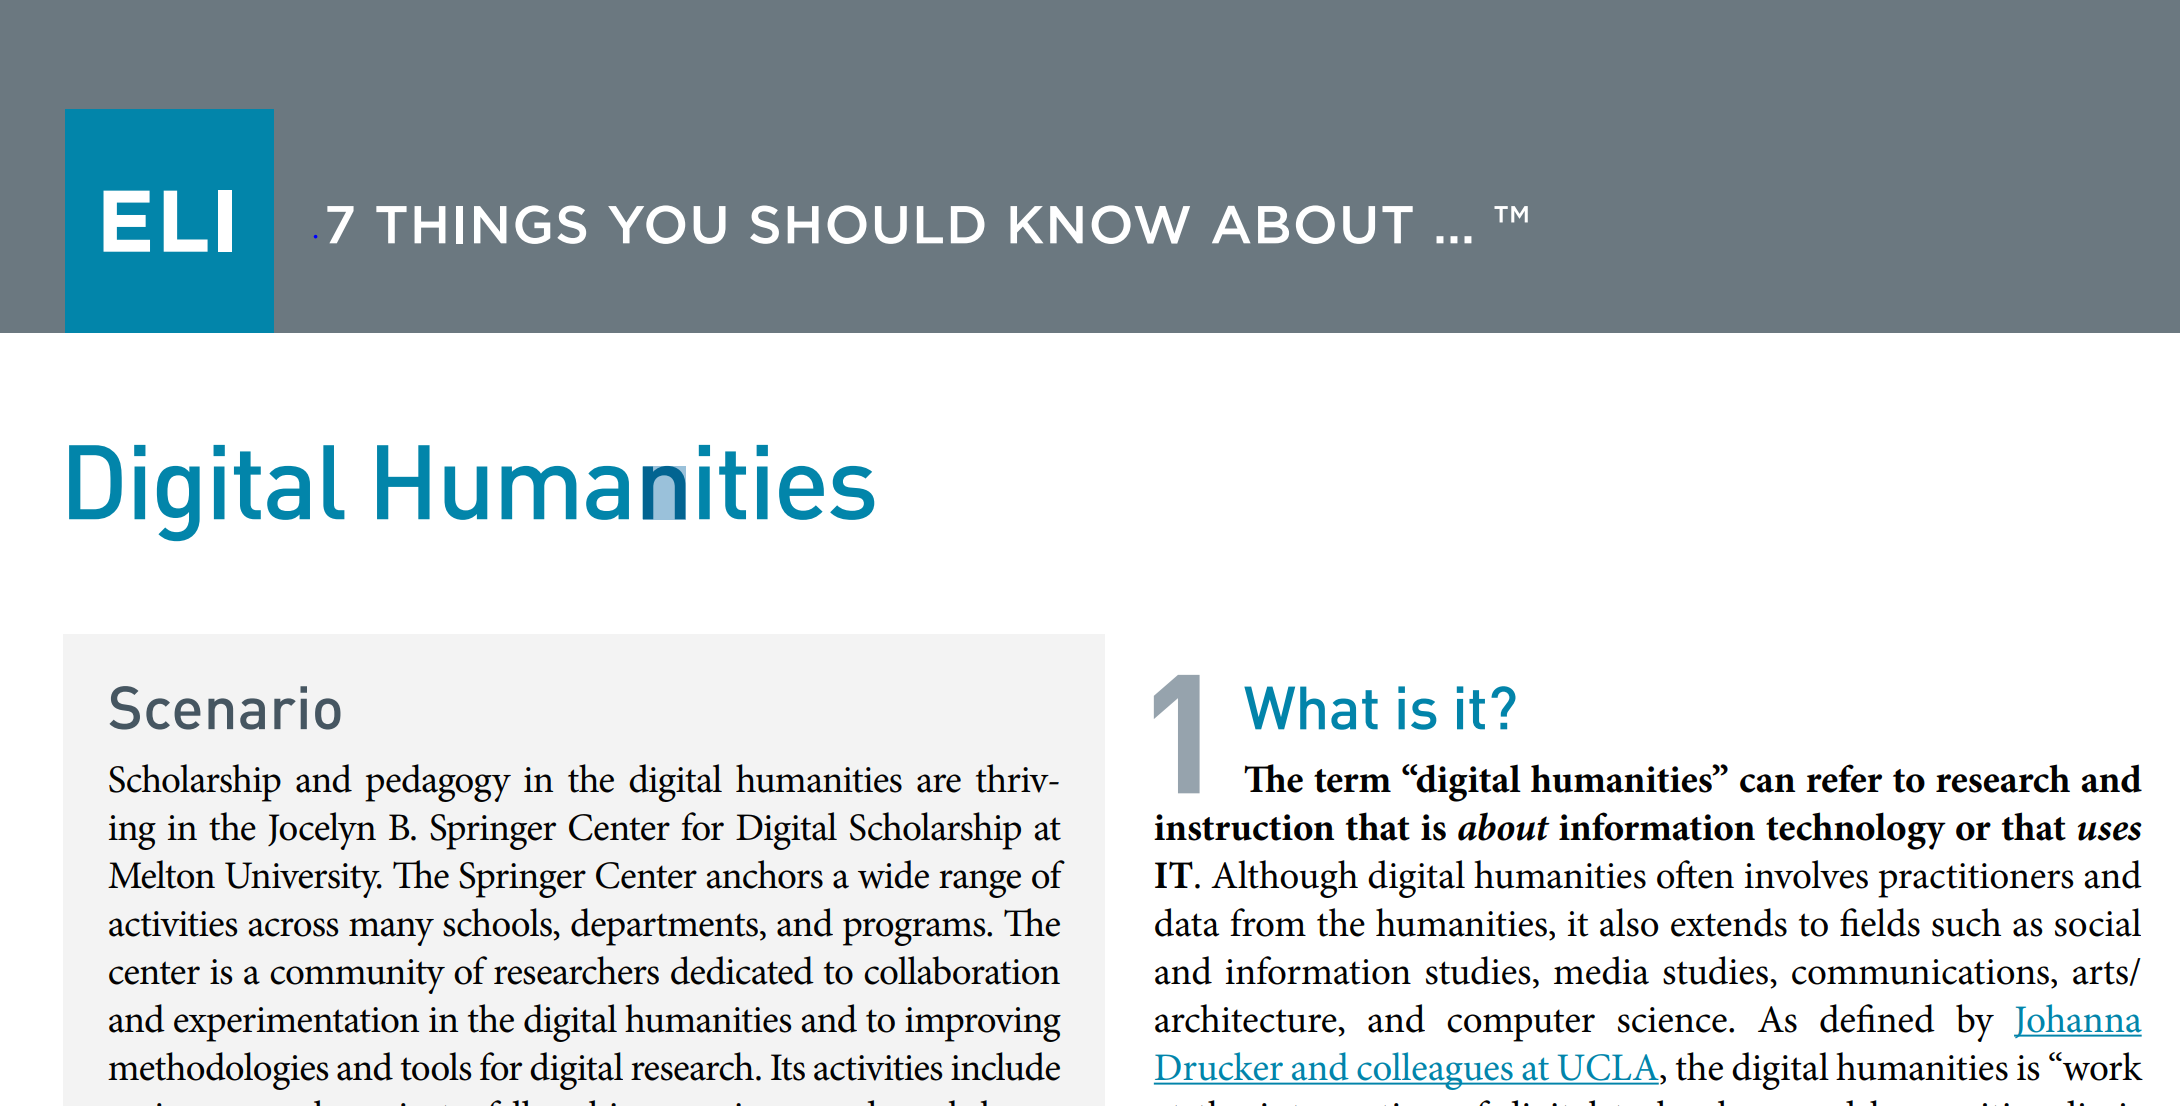 7 Things You Should Know About Digital Humanities